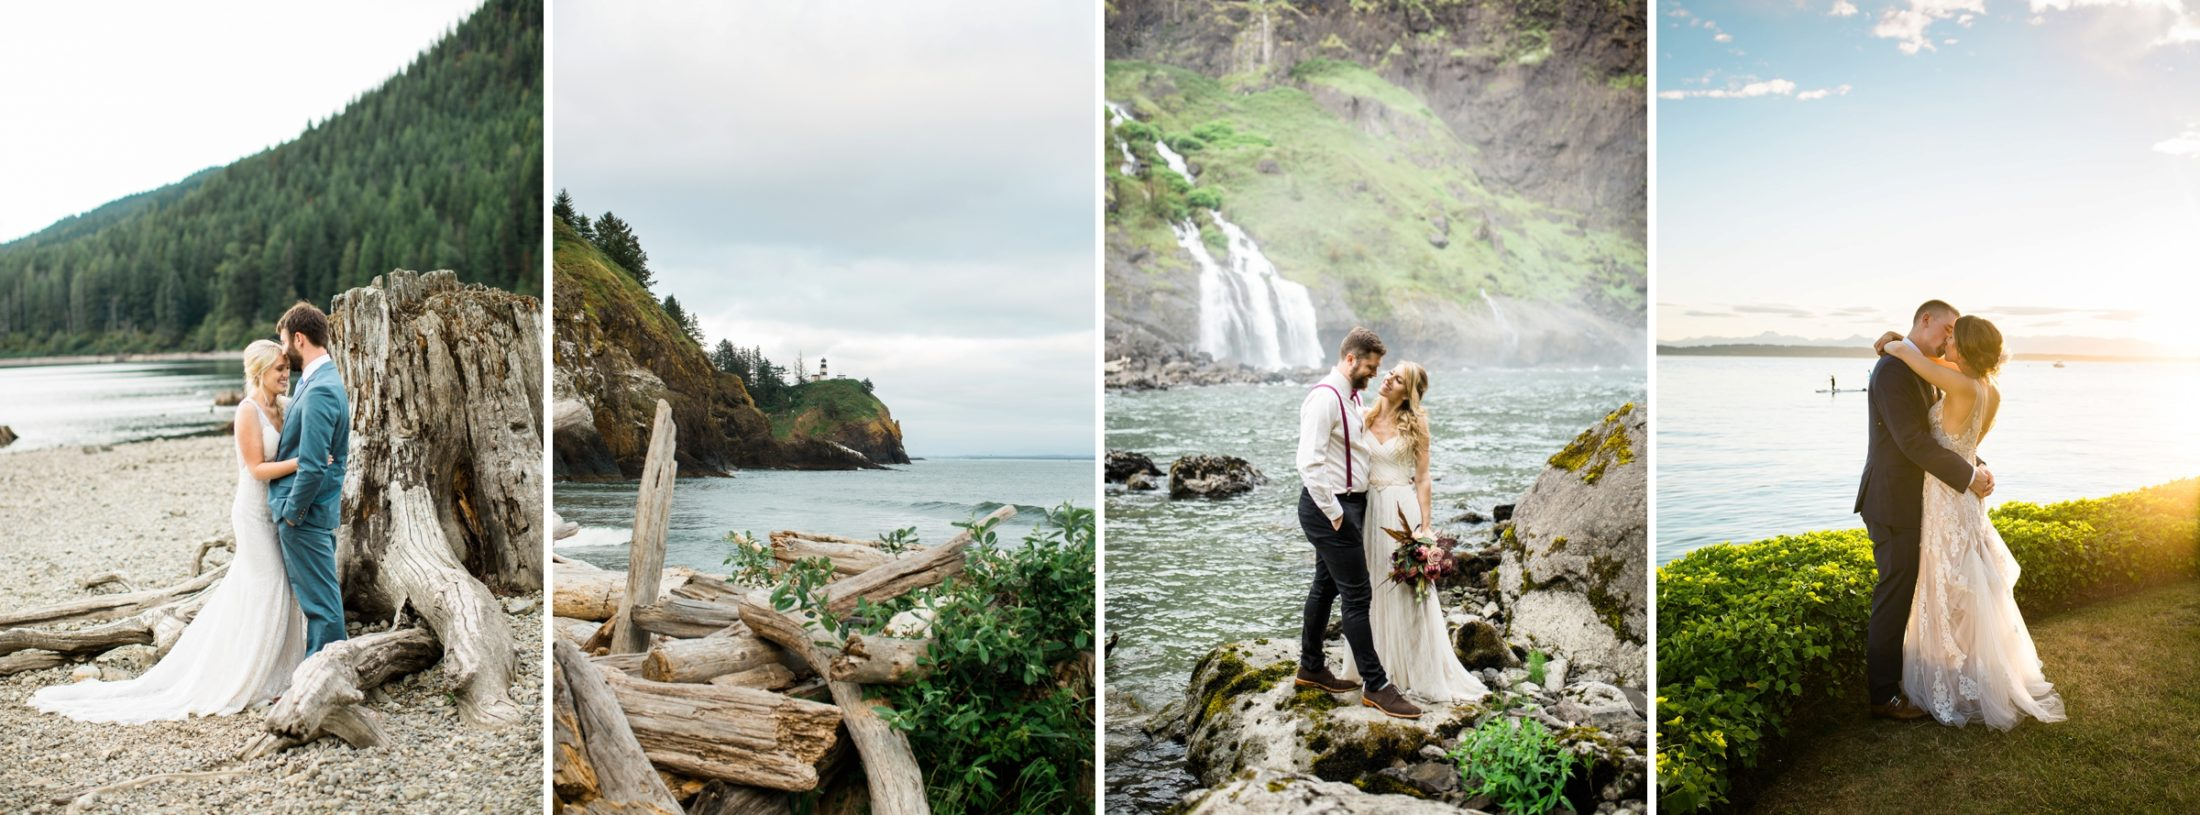 Photography by Betty Elaine's Best Places to Elope near Seattle